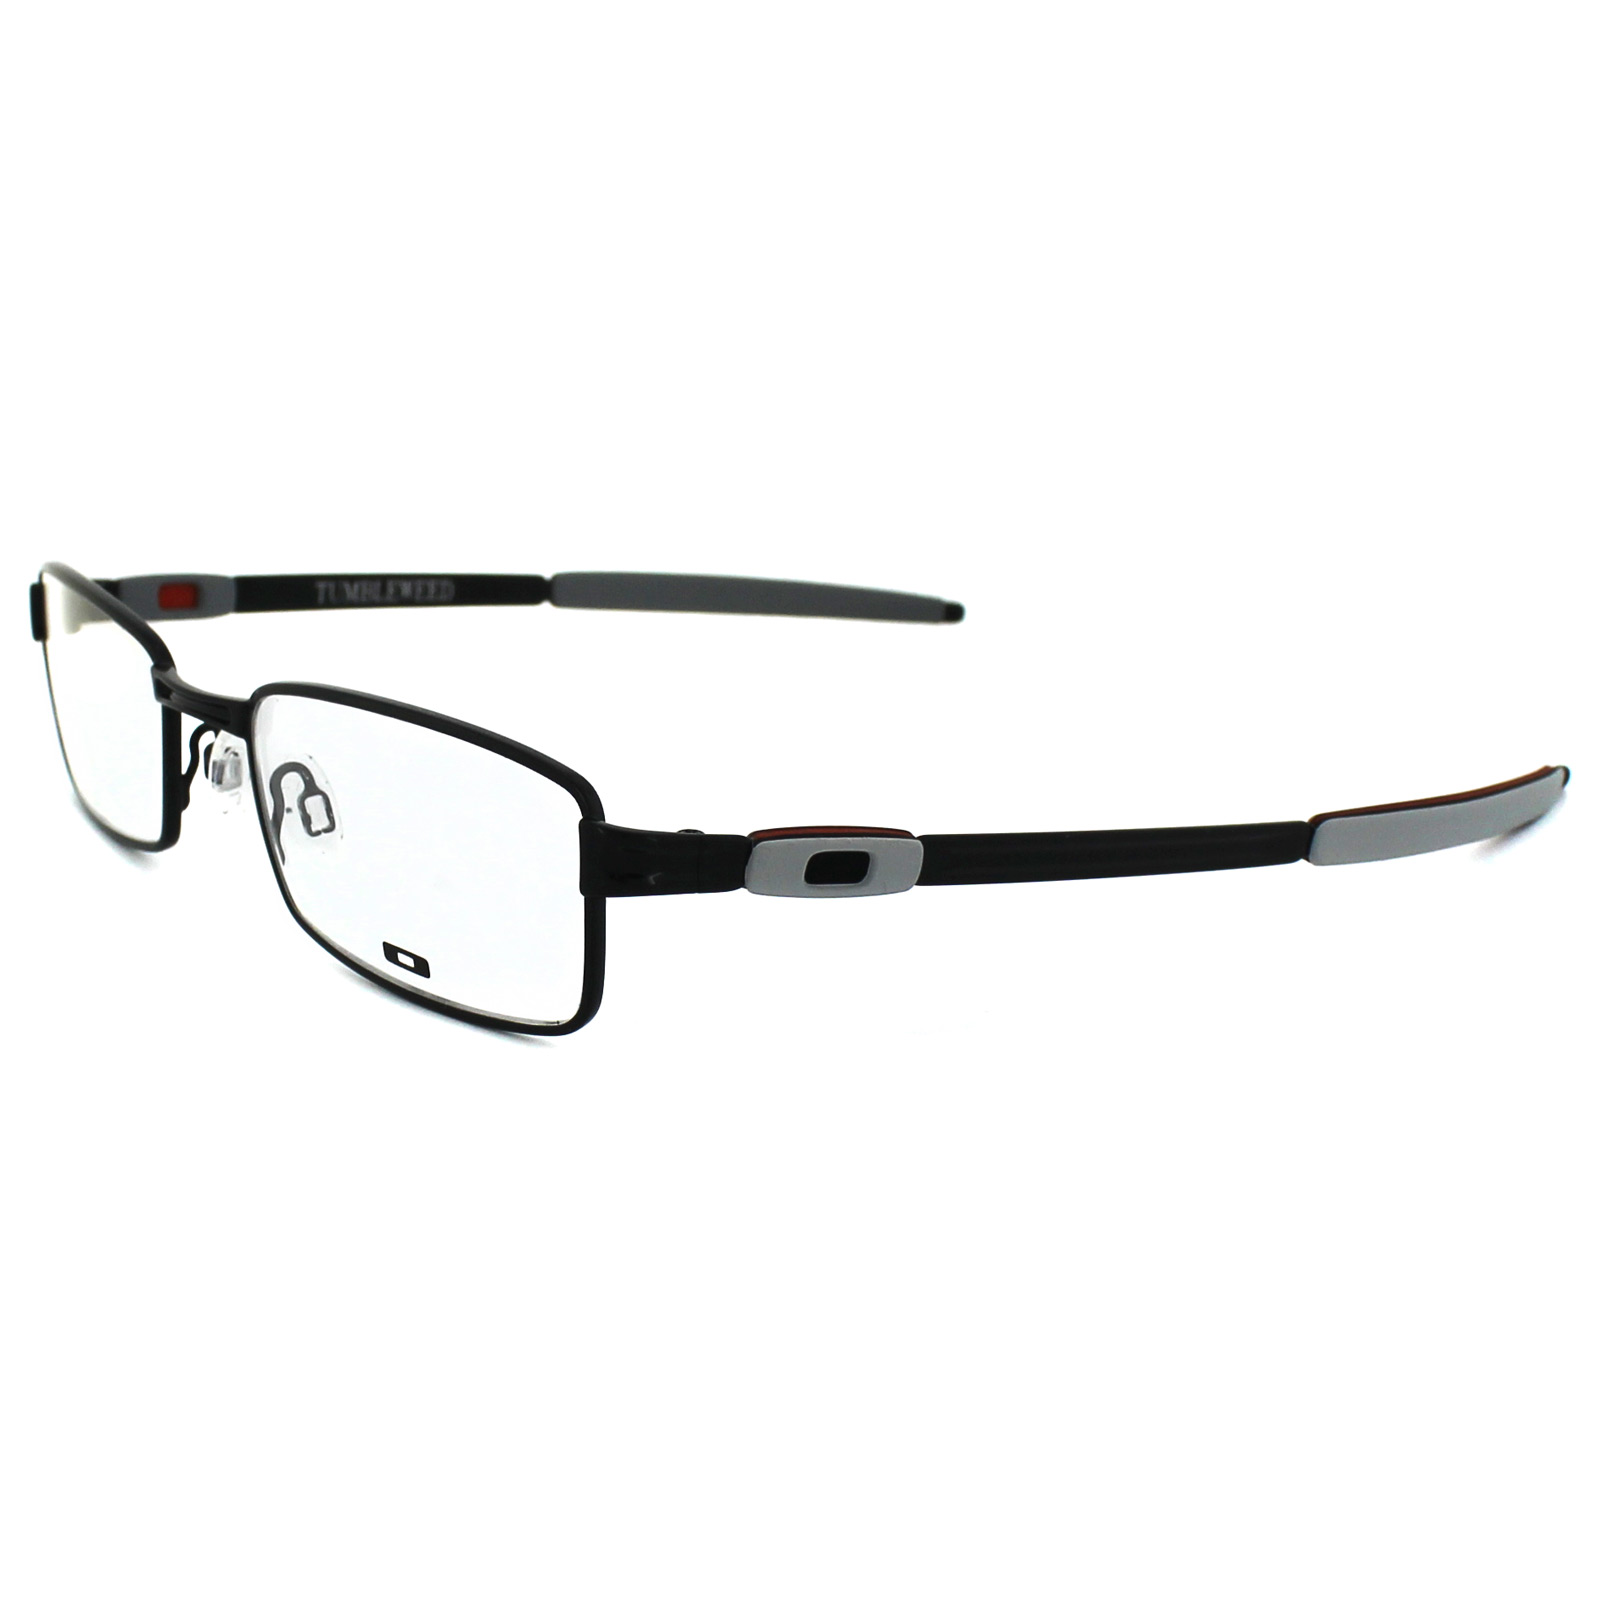 Oakley Glasses Frames Tumbleweed 3112-01 Polished Black 51mm ...